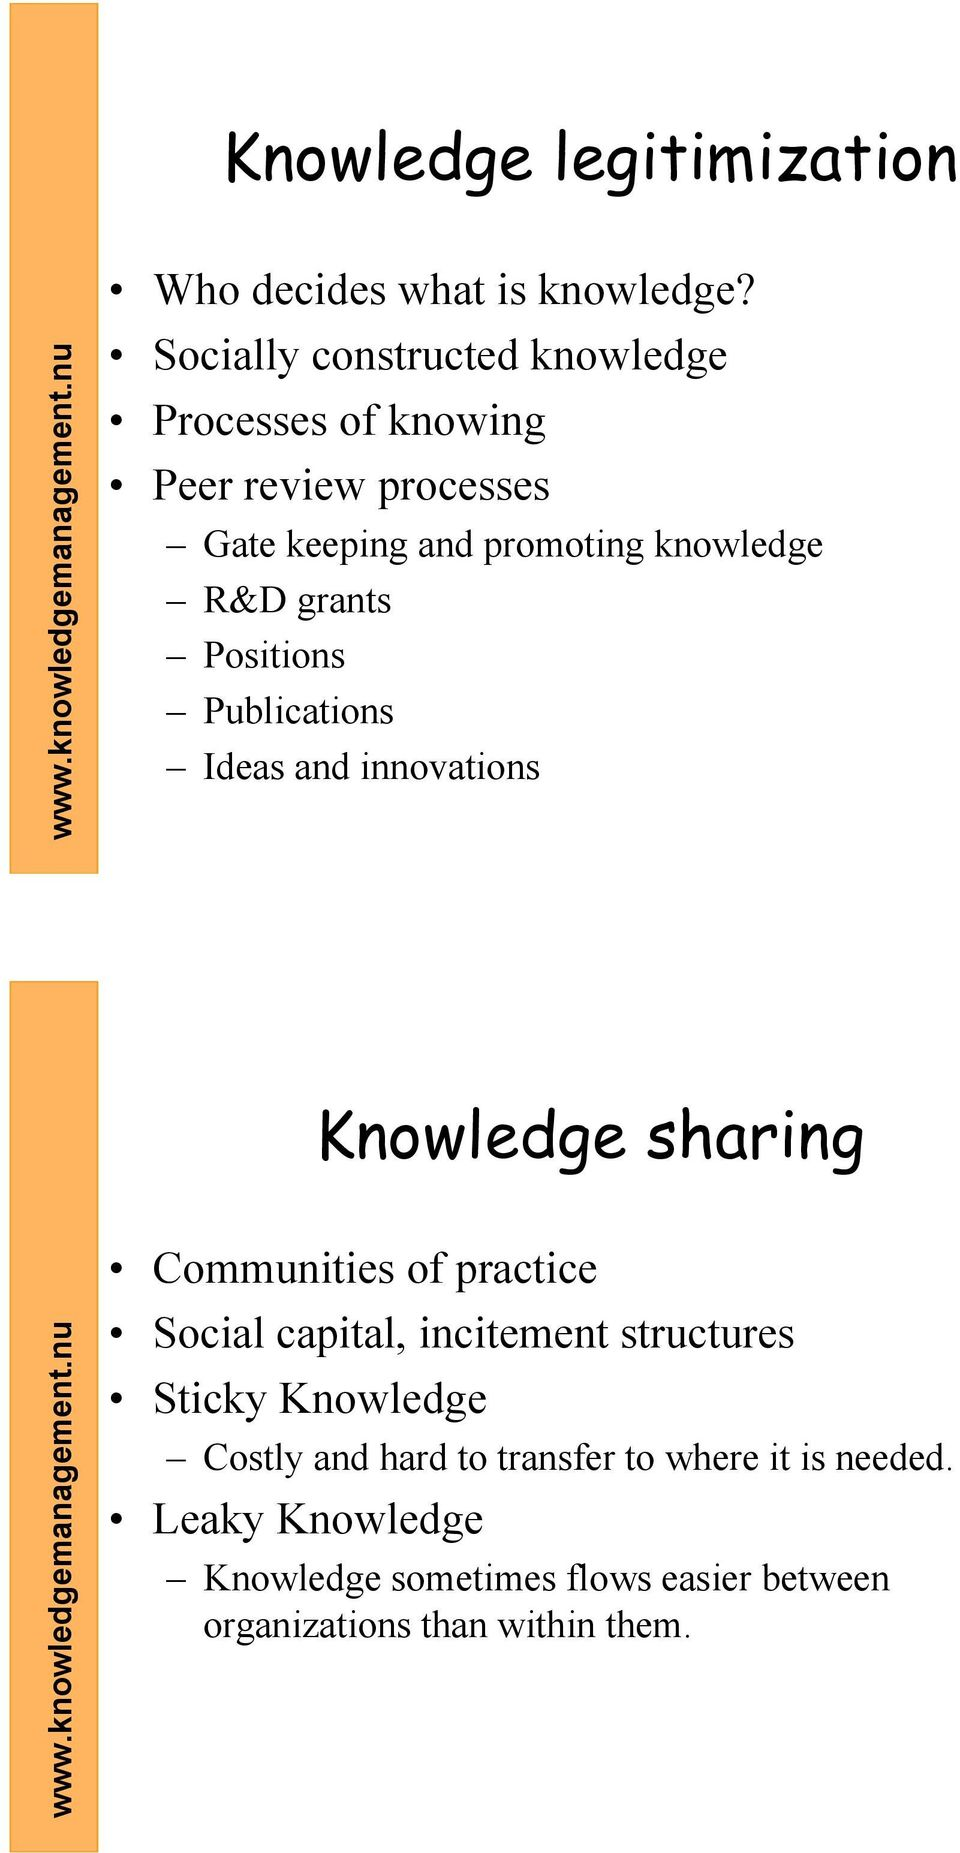 grants Positions Publications Ideas and innovations Knowledge sharing Communities of practice Social capital,